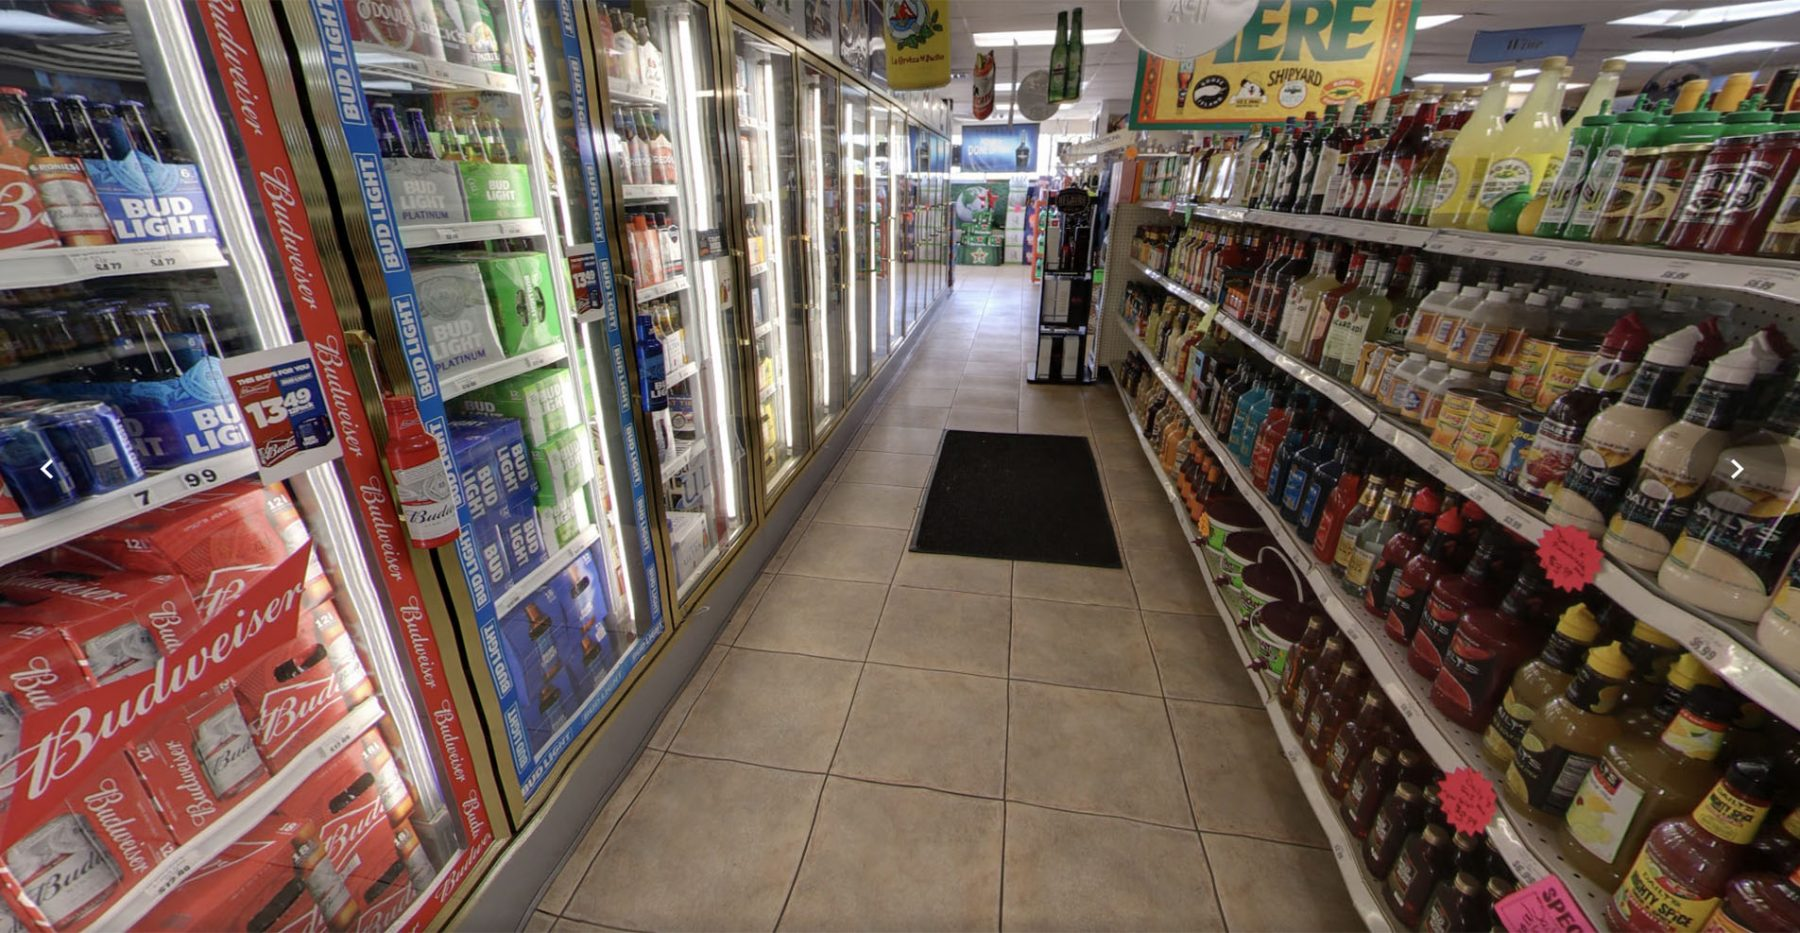 101 Liquors, Deerfield Beach, is open every day including holidays